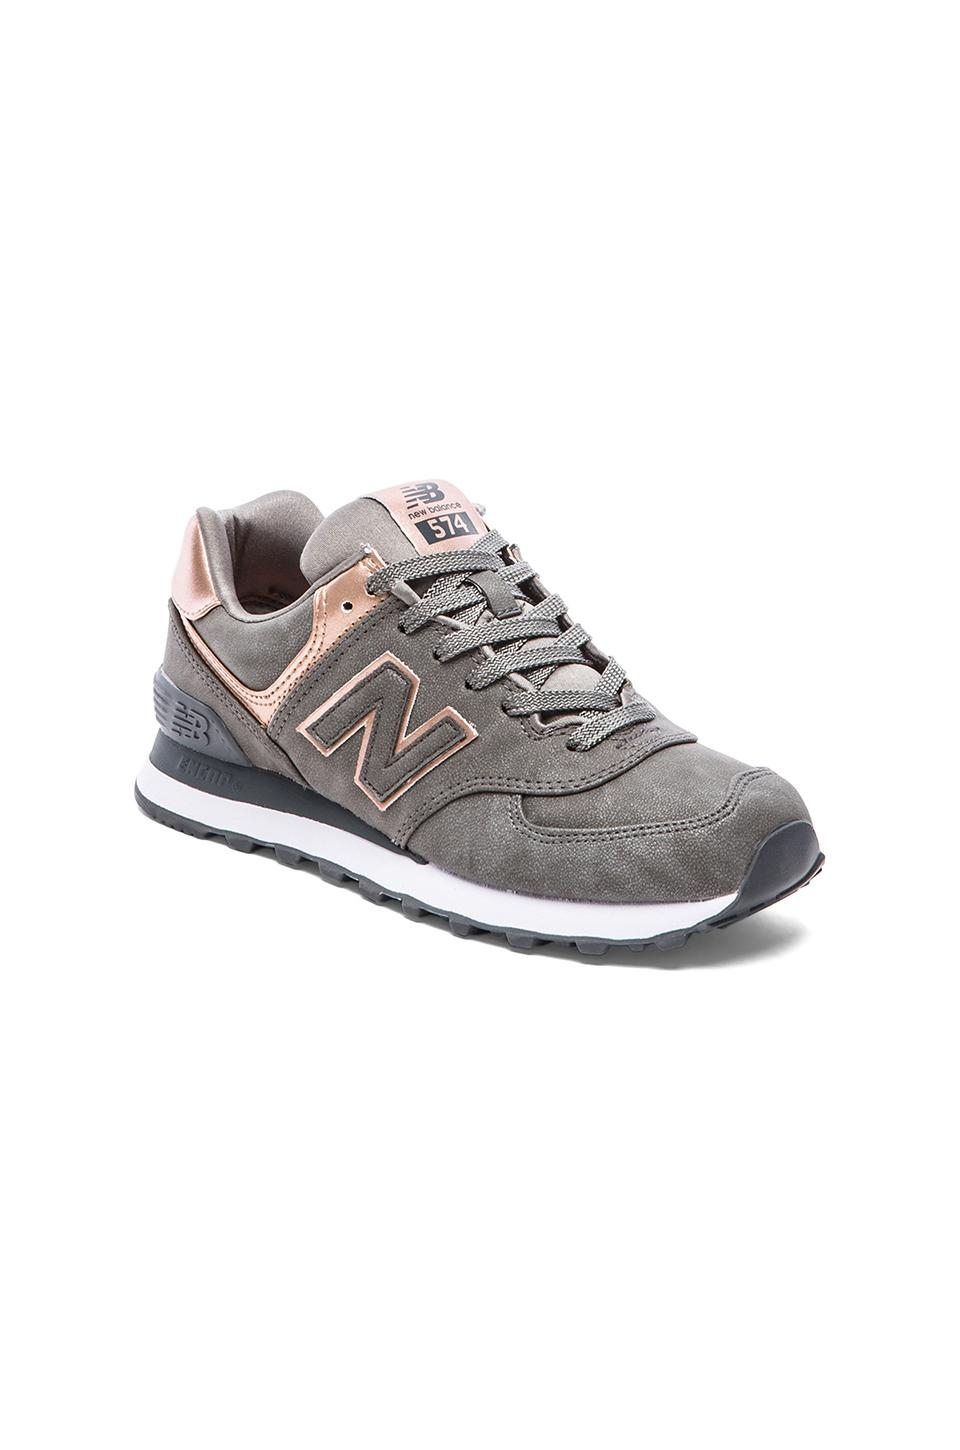 lyst new balance 574 precious metals collection sneaker in metallic. Black Bedroom Furniture Sets. Home Design Ideas